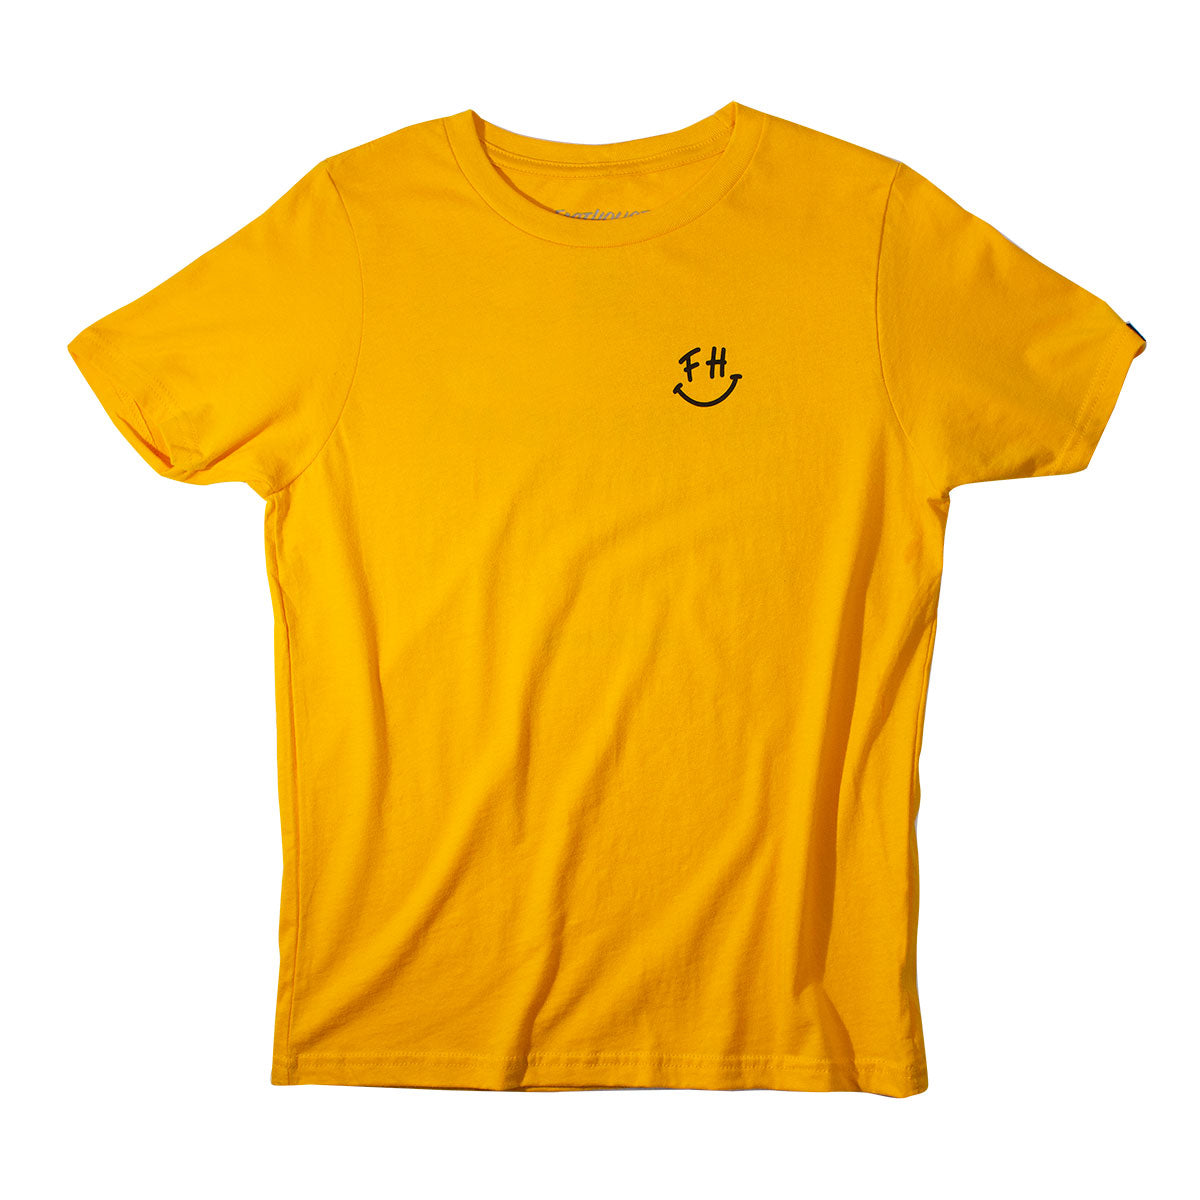 Fasthouse - Stanley Tee - Vintage Gold